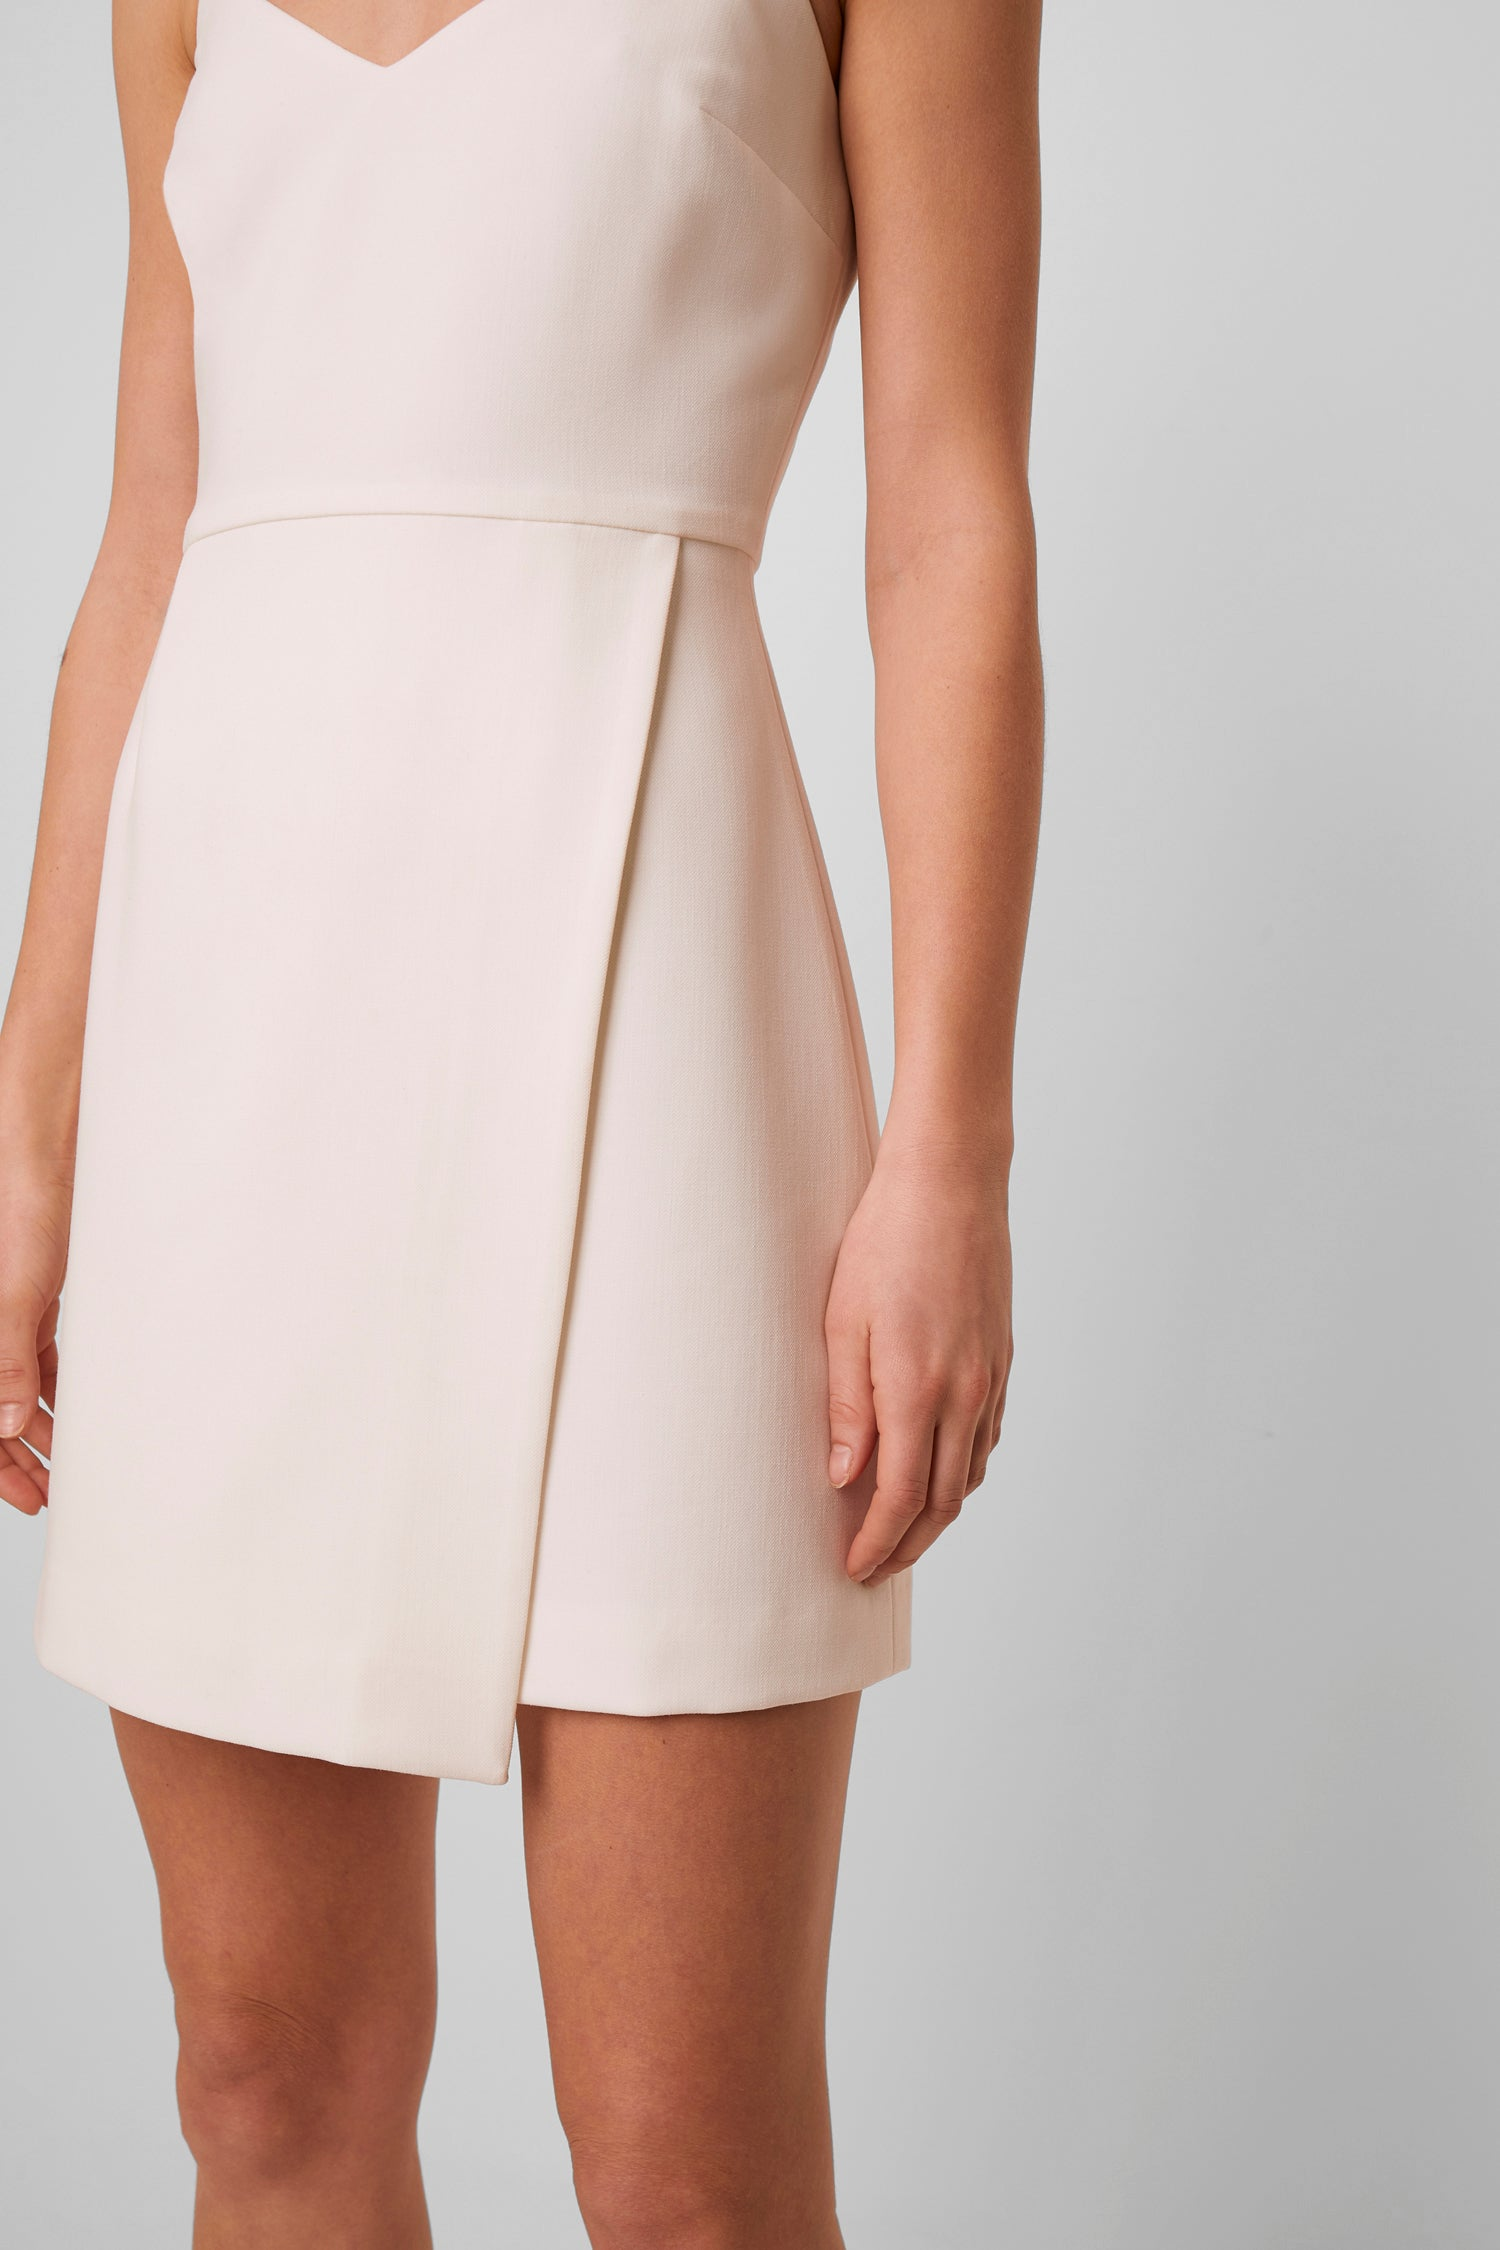 French Connection Demi Dress - Summer White